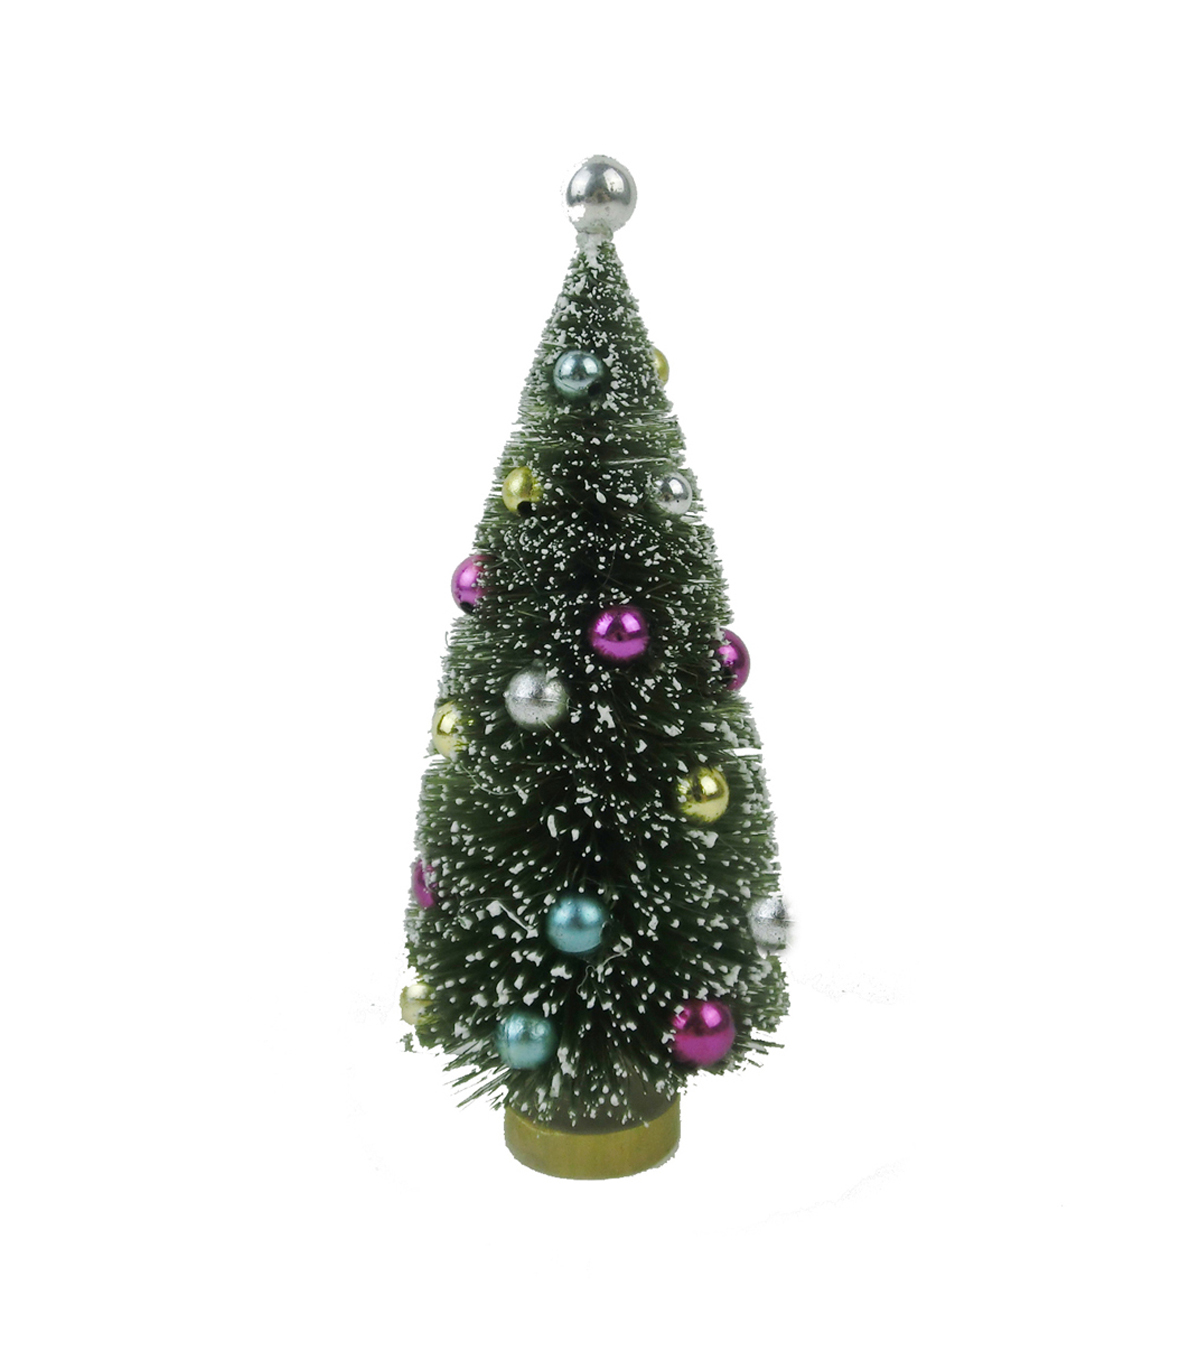 "Maker's Holiday Christmas 6"" Tree with Ornaments-Bright Colors"